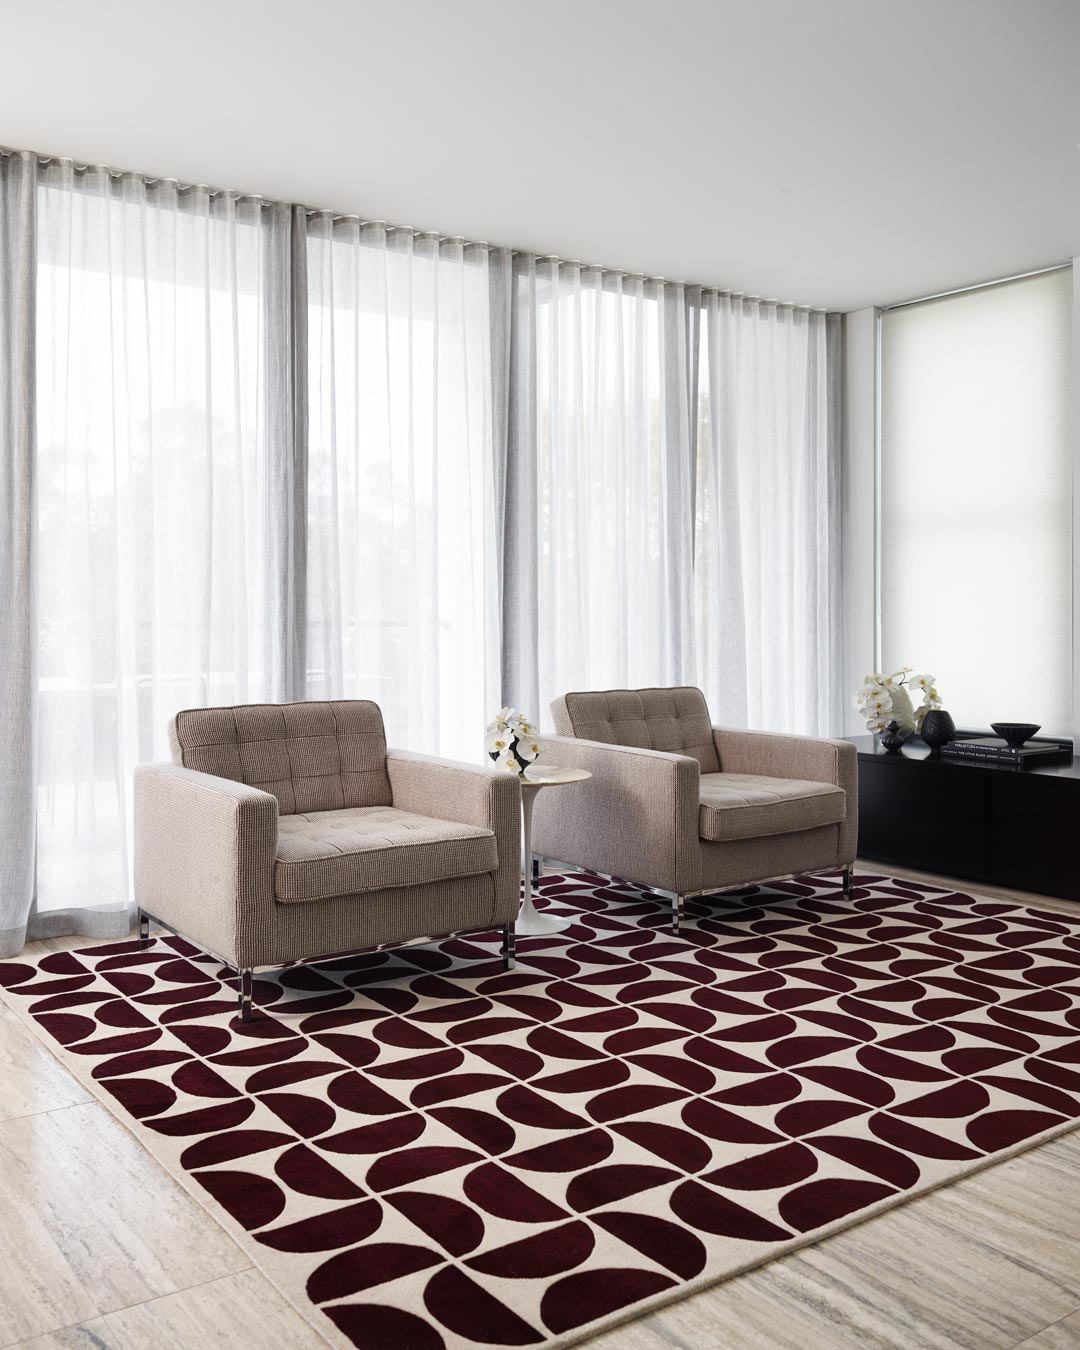 location living room of rio rug by greg natale